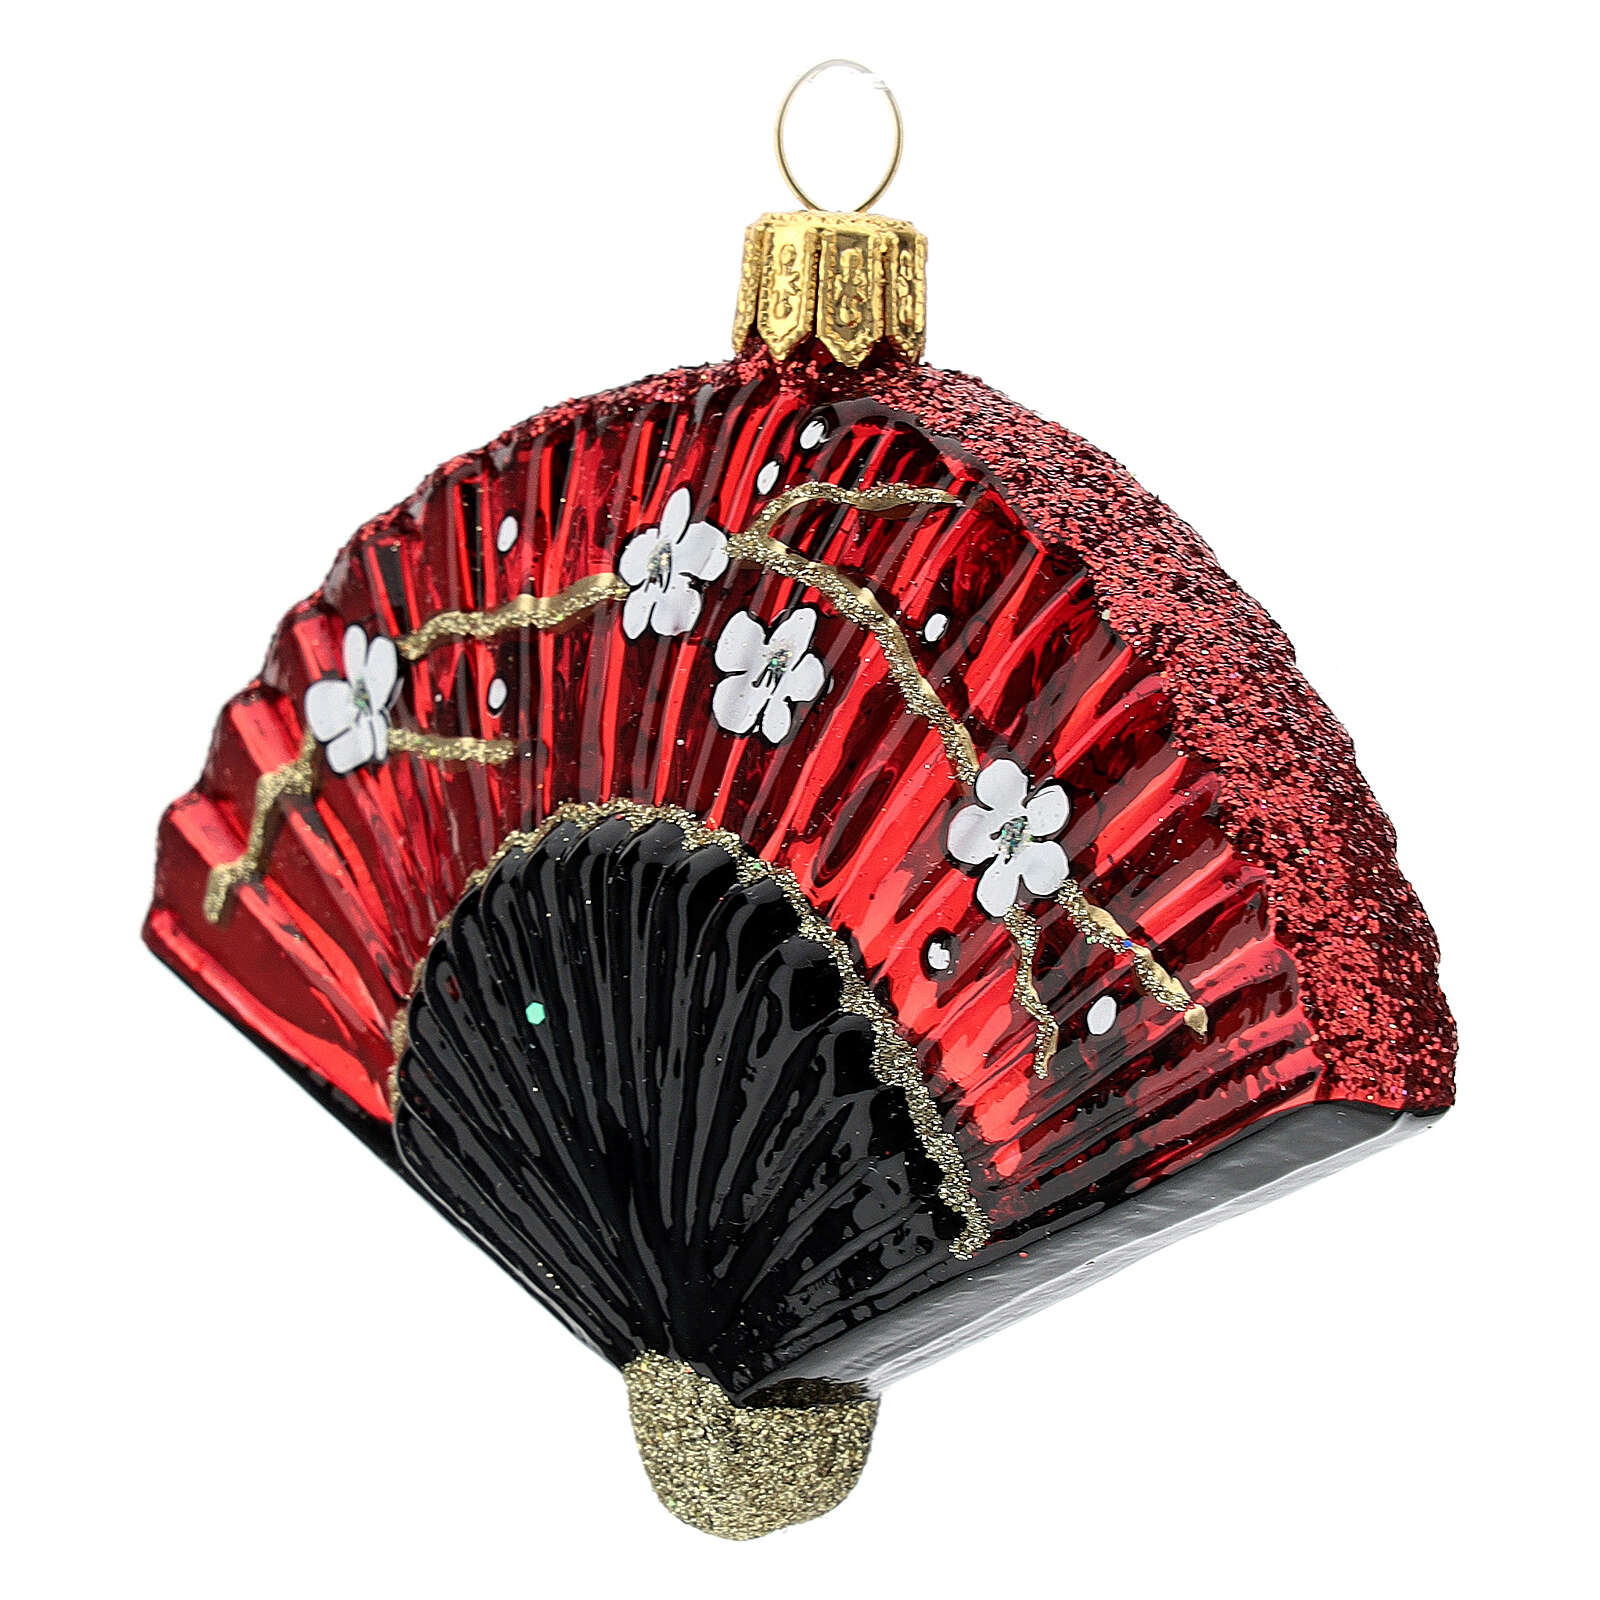 Blown glass Christmas ornament, Japanese fan 4